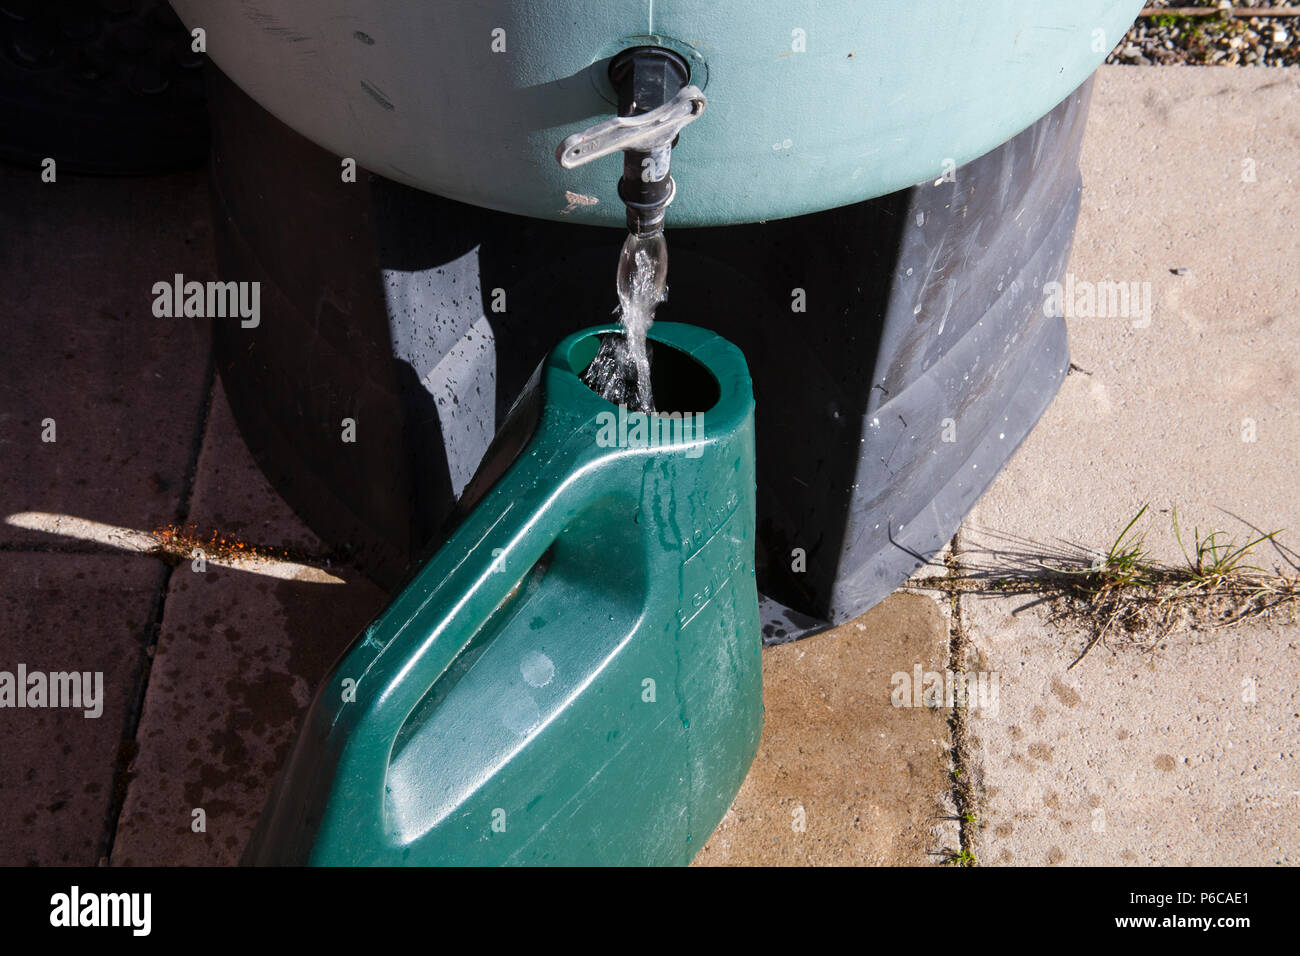 Filling watering can with rainwater from waterbutt to water plants during drought saving cost of metered water - Stock Image